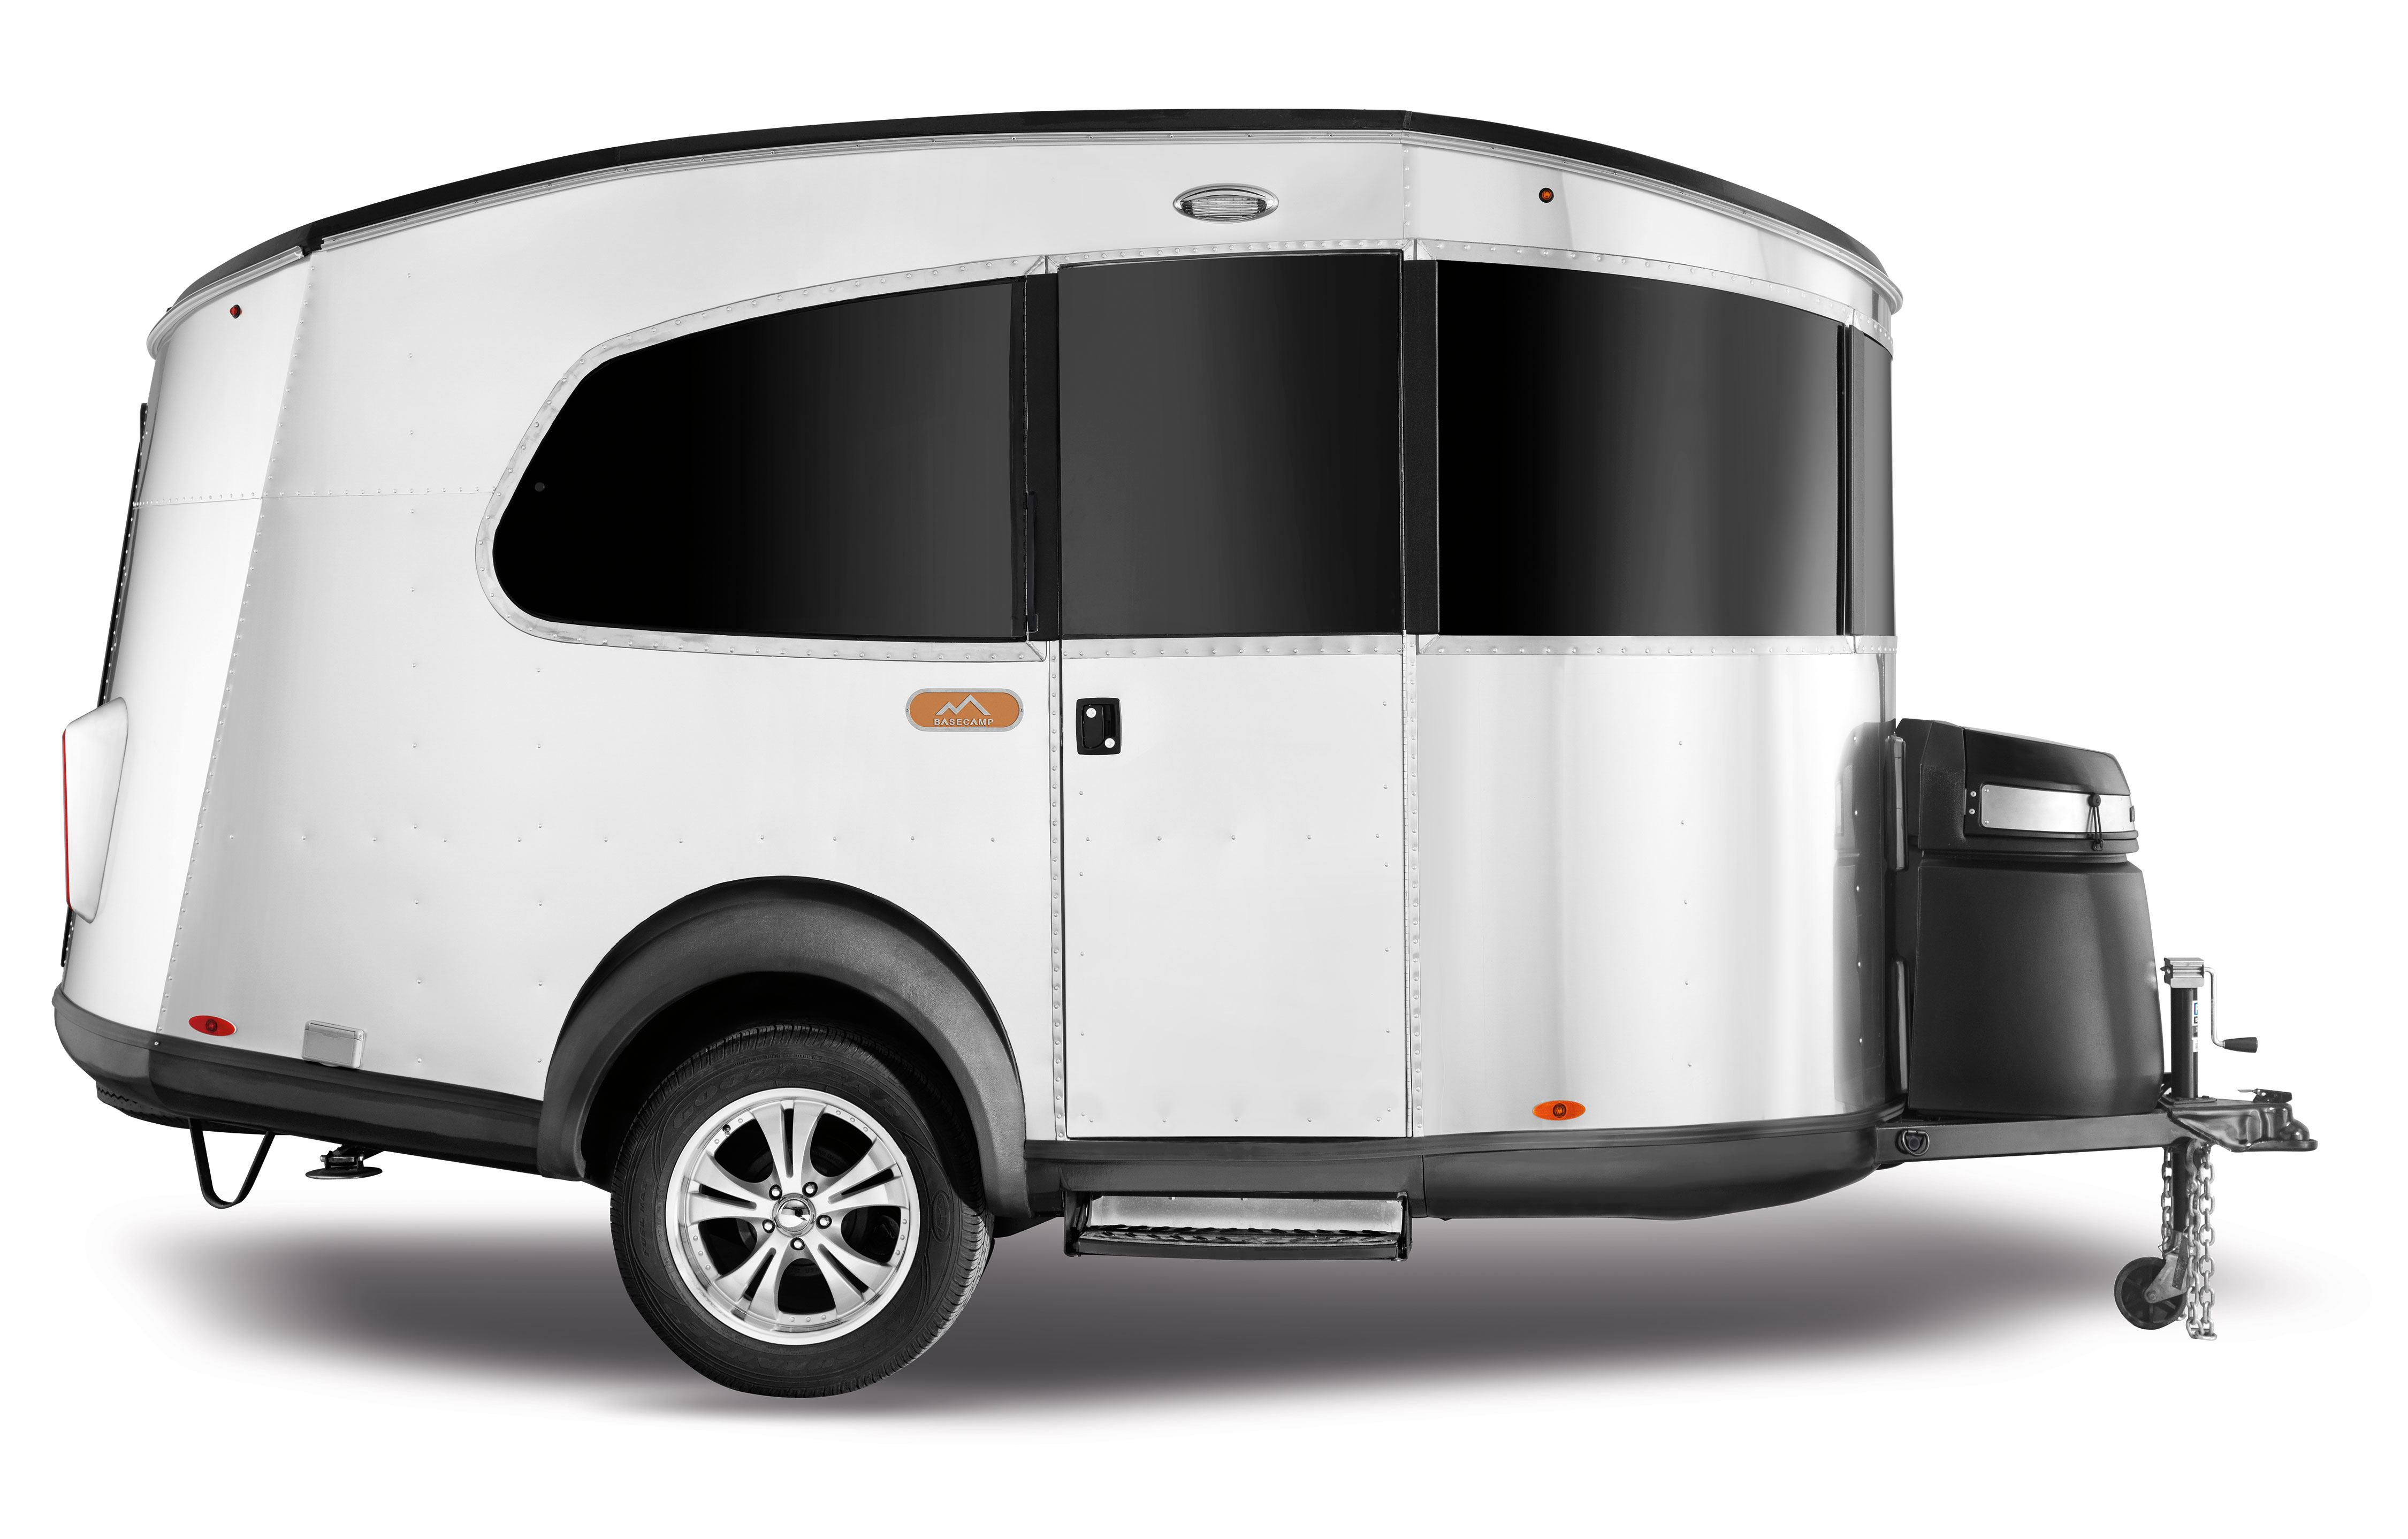 What S New With The 2018 Basecamp Airstream